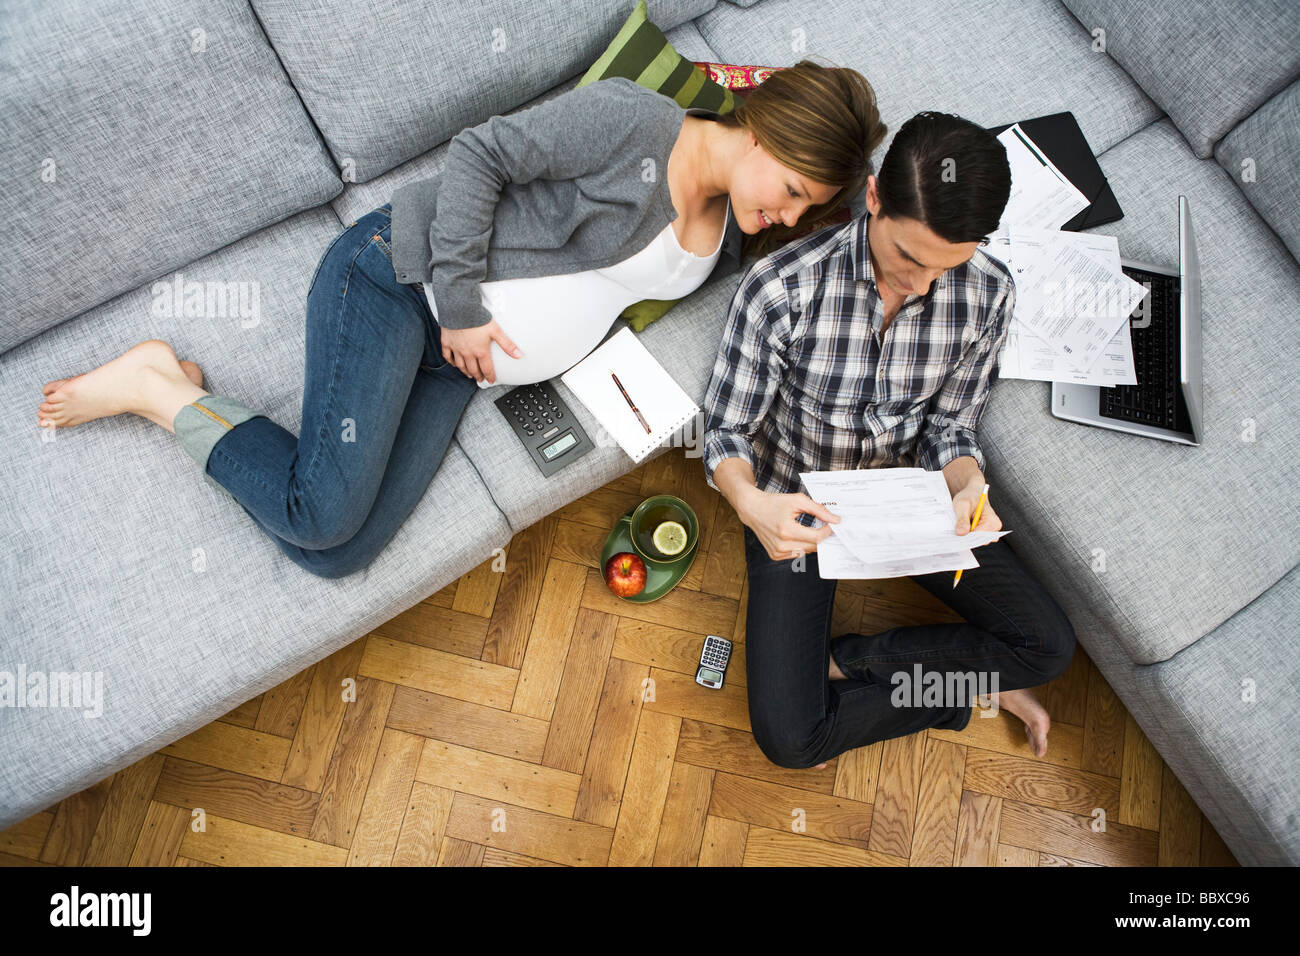 A pregnant woman and a man discussing their home finances Sweden. - Stock Image